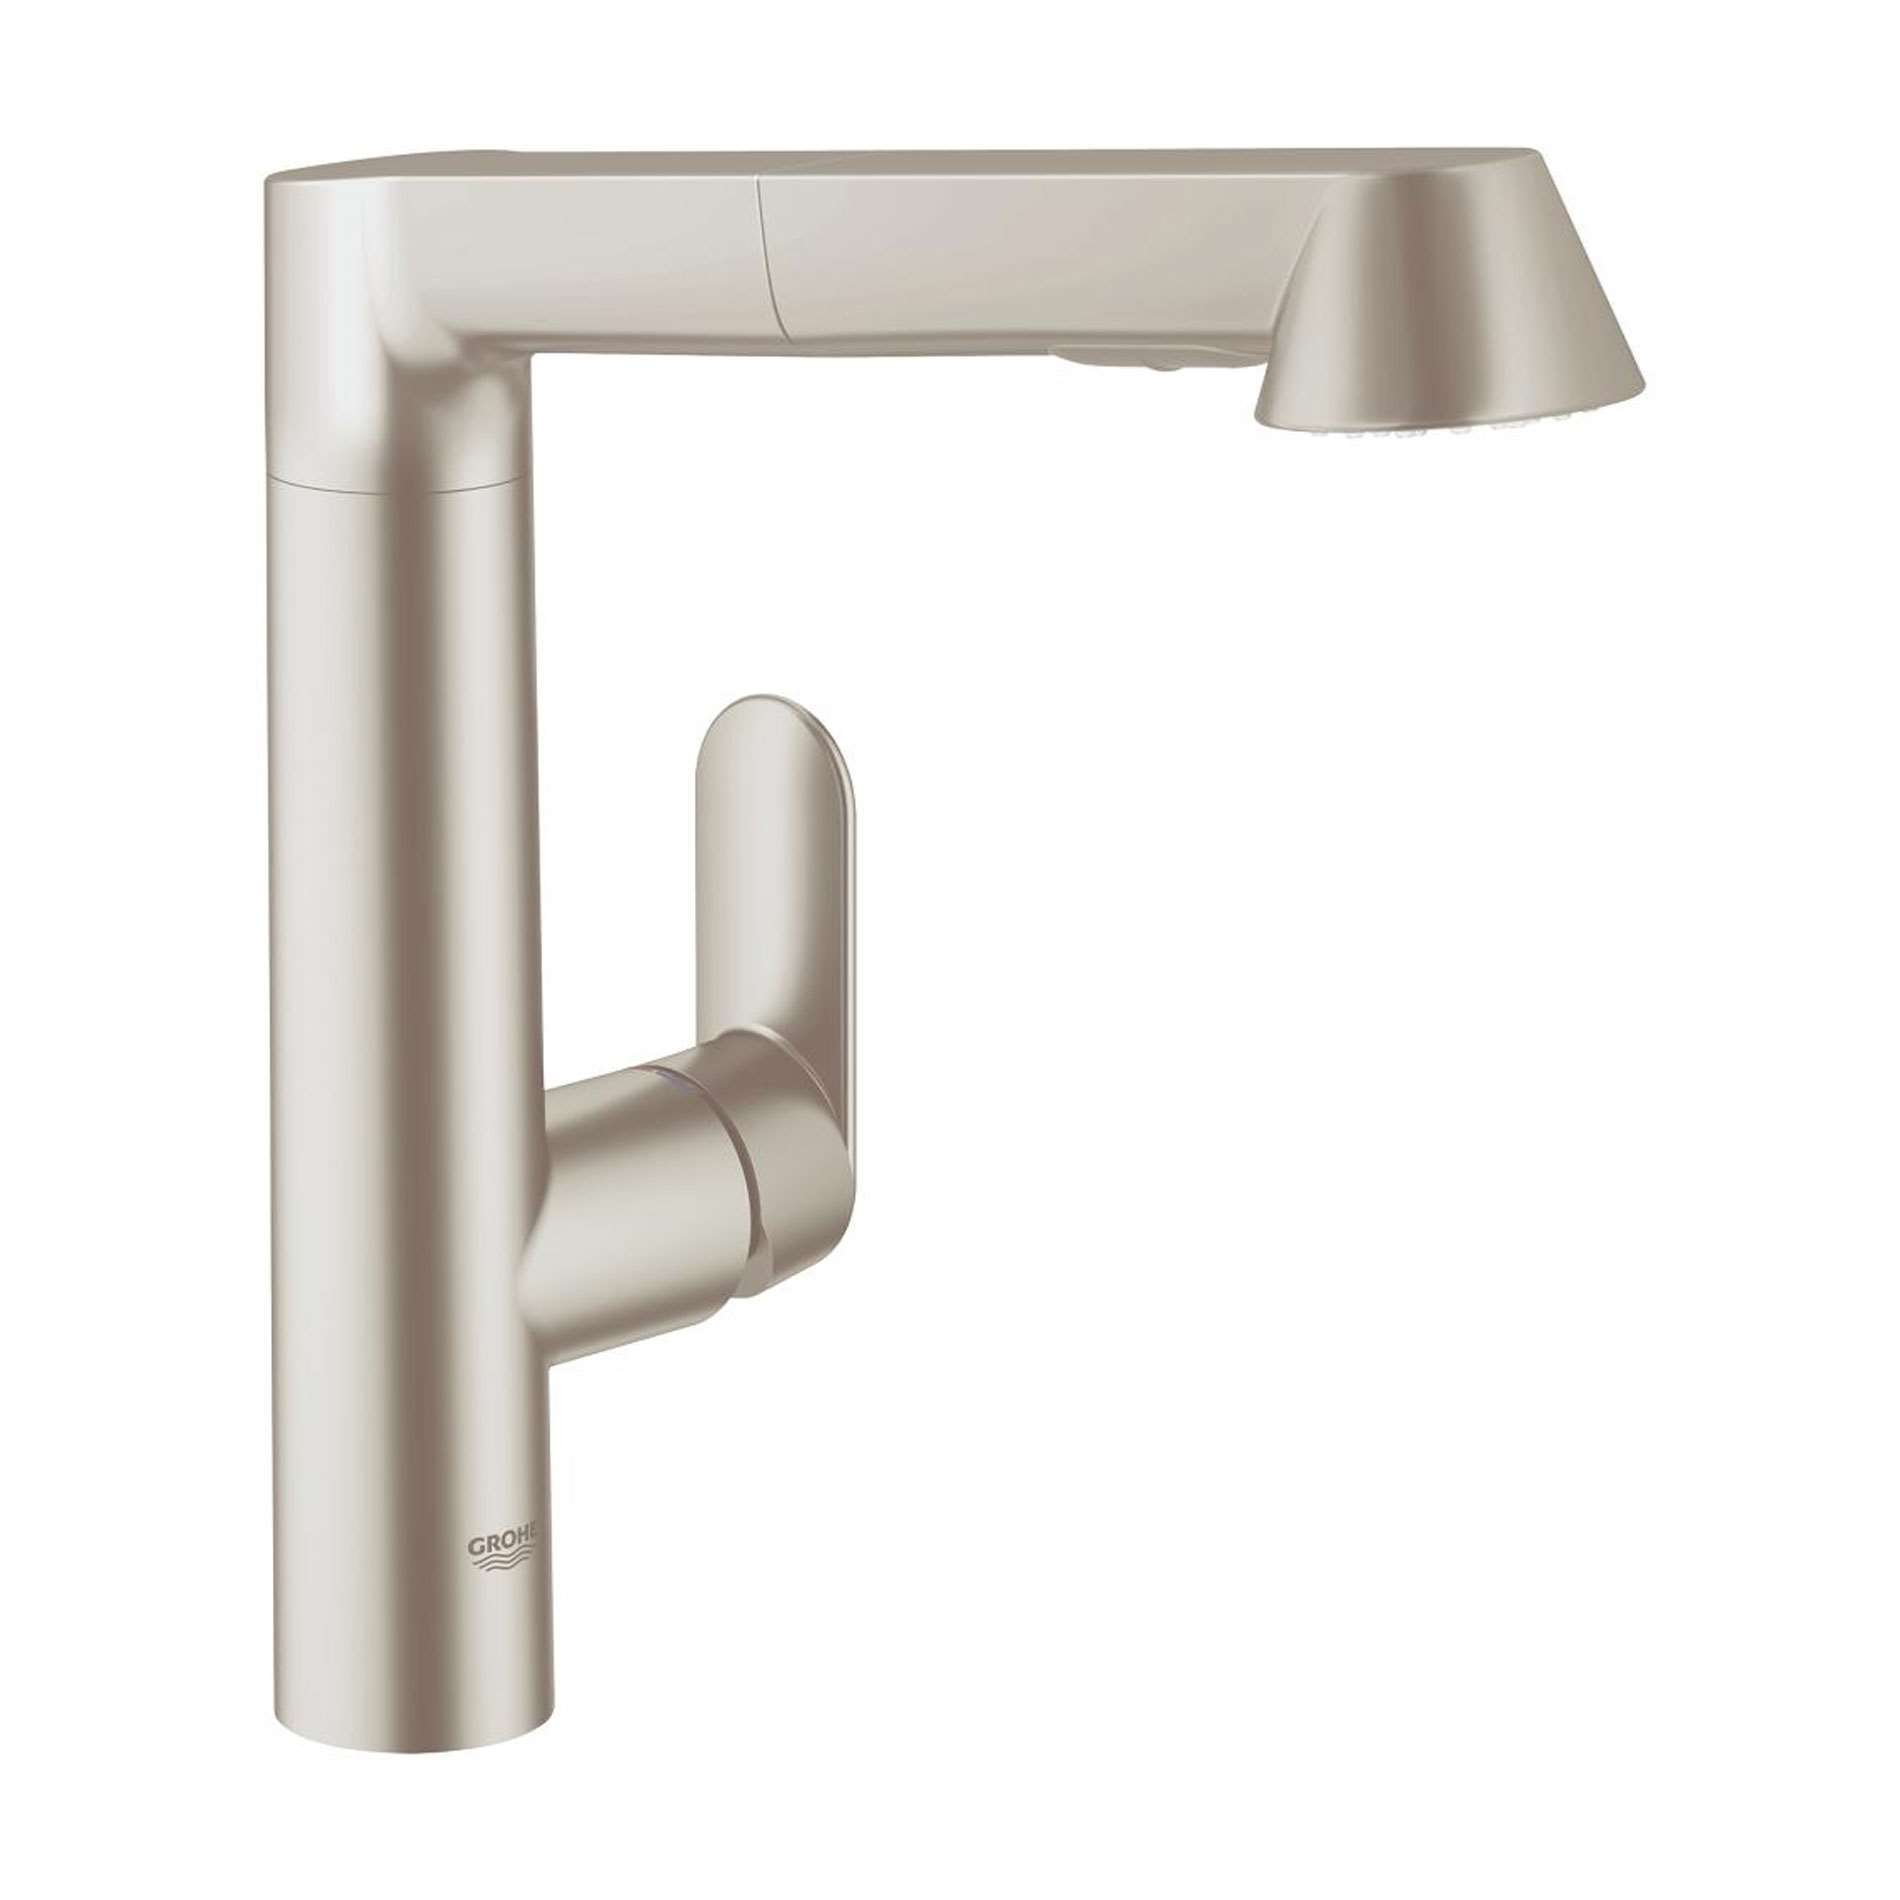 Grohe Kitchen Taps With Pull Out